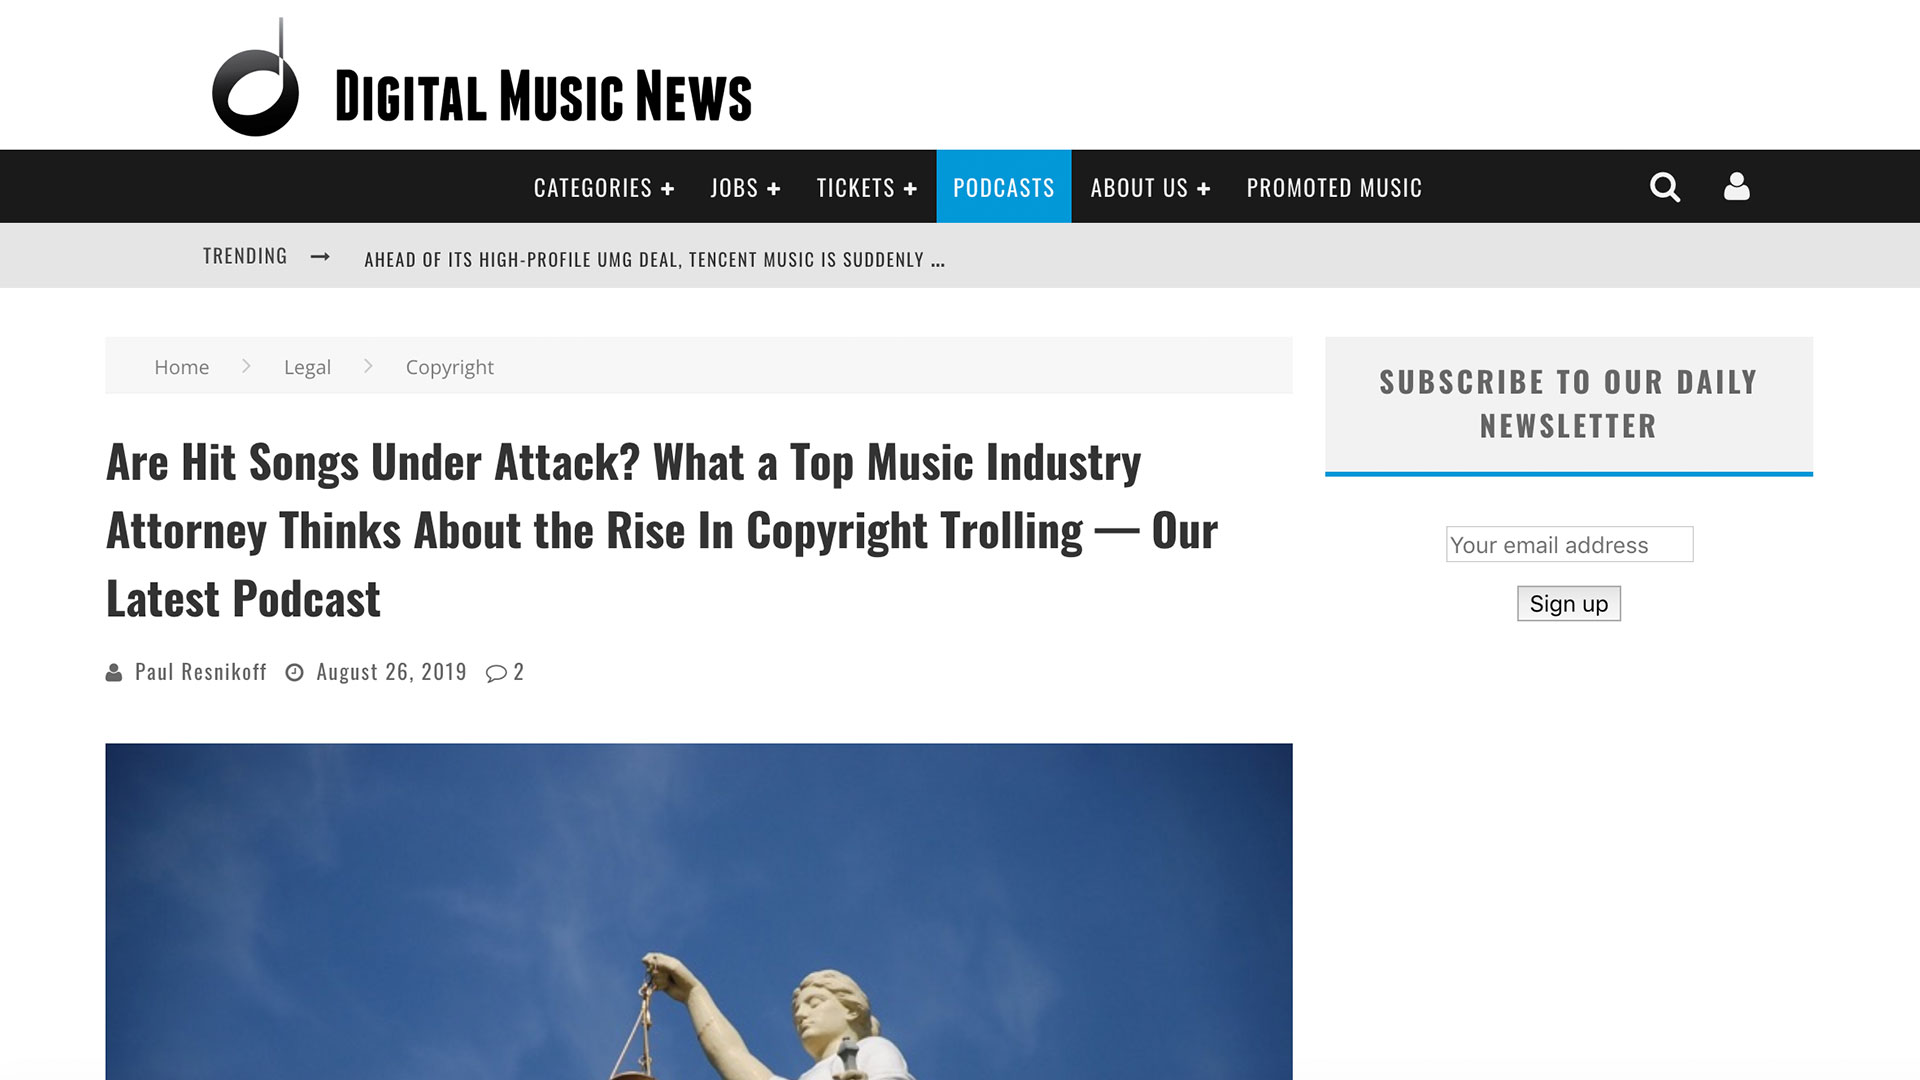 Fairness Rocks News Are Hit Songs Under Attack? What a Top Music Industry Attorney Thinks About the Rise In Copyright Trolling — Our Latest Podcast